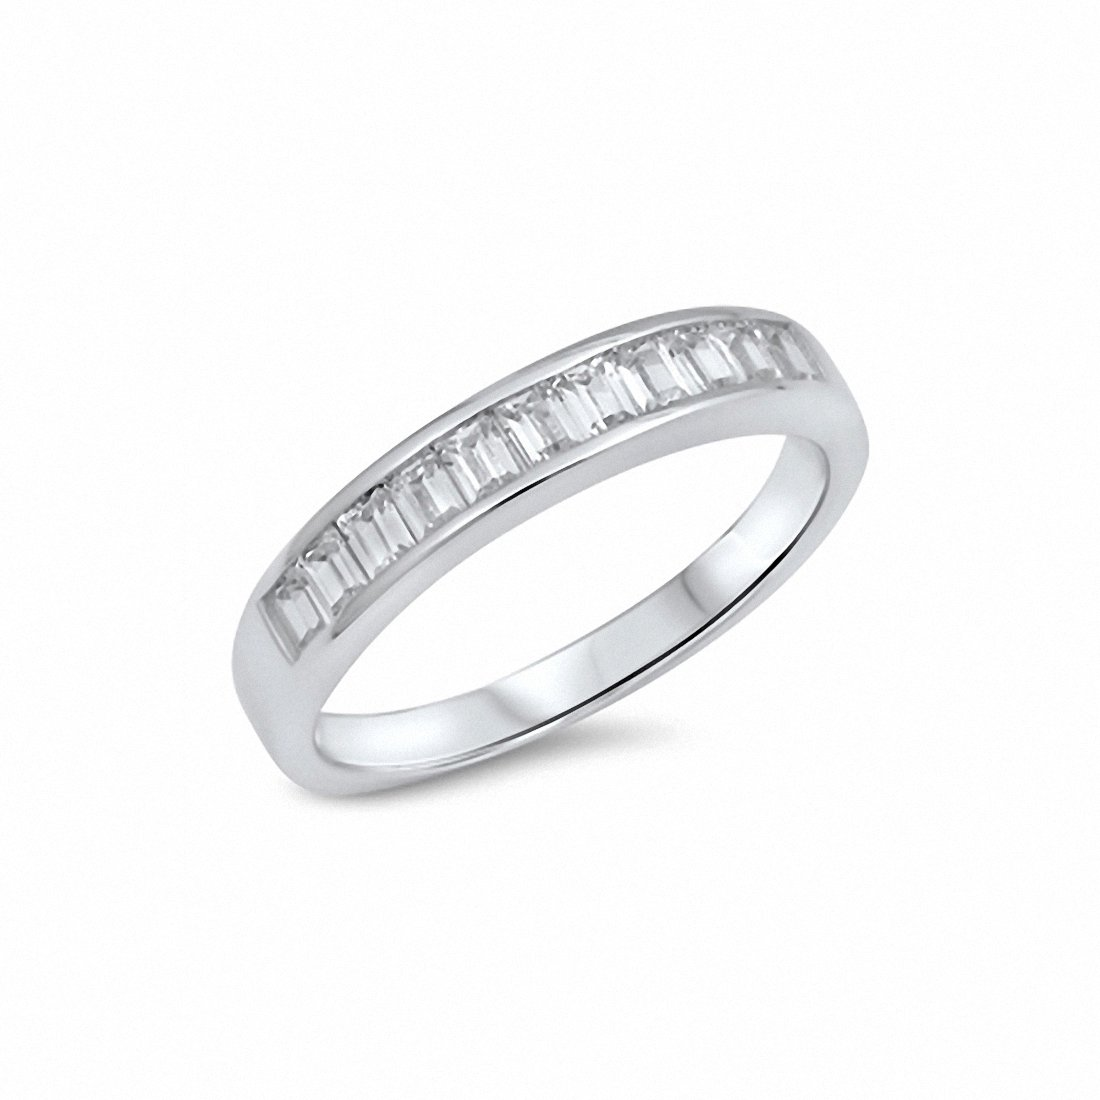 Precious Metal Without Stones Jewelry & Watches Cheap Price Sterling Silver Half Eternity Baguette And Round Cubic Zirconias Ring